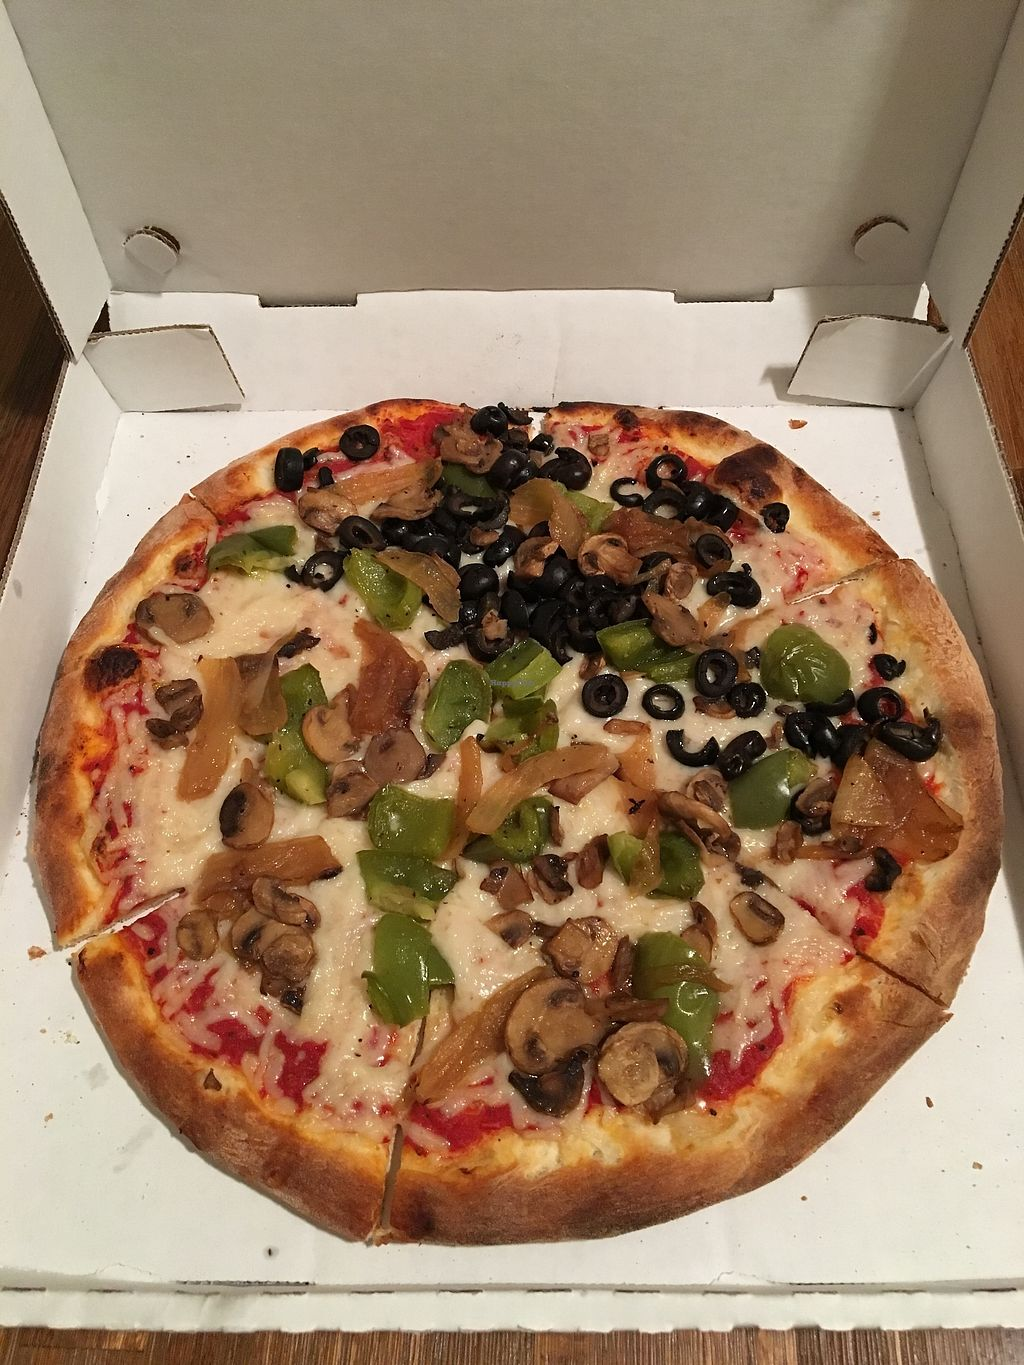 "Photo of Amici's East Coast Pizzeria  by <a href=""/members/profile/Clean%26Green"">Clean&Green</a> <br/>Veggie pizza, daiya cheese <br/> January 17, 2018  - <a href='/contact/abuse/image/109695/347462'>Report</a>"